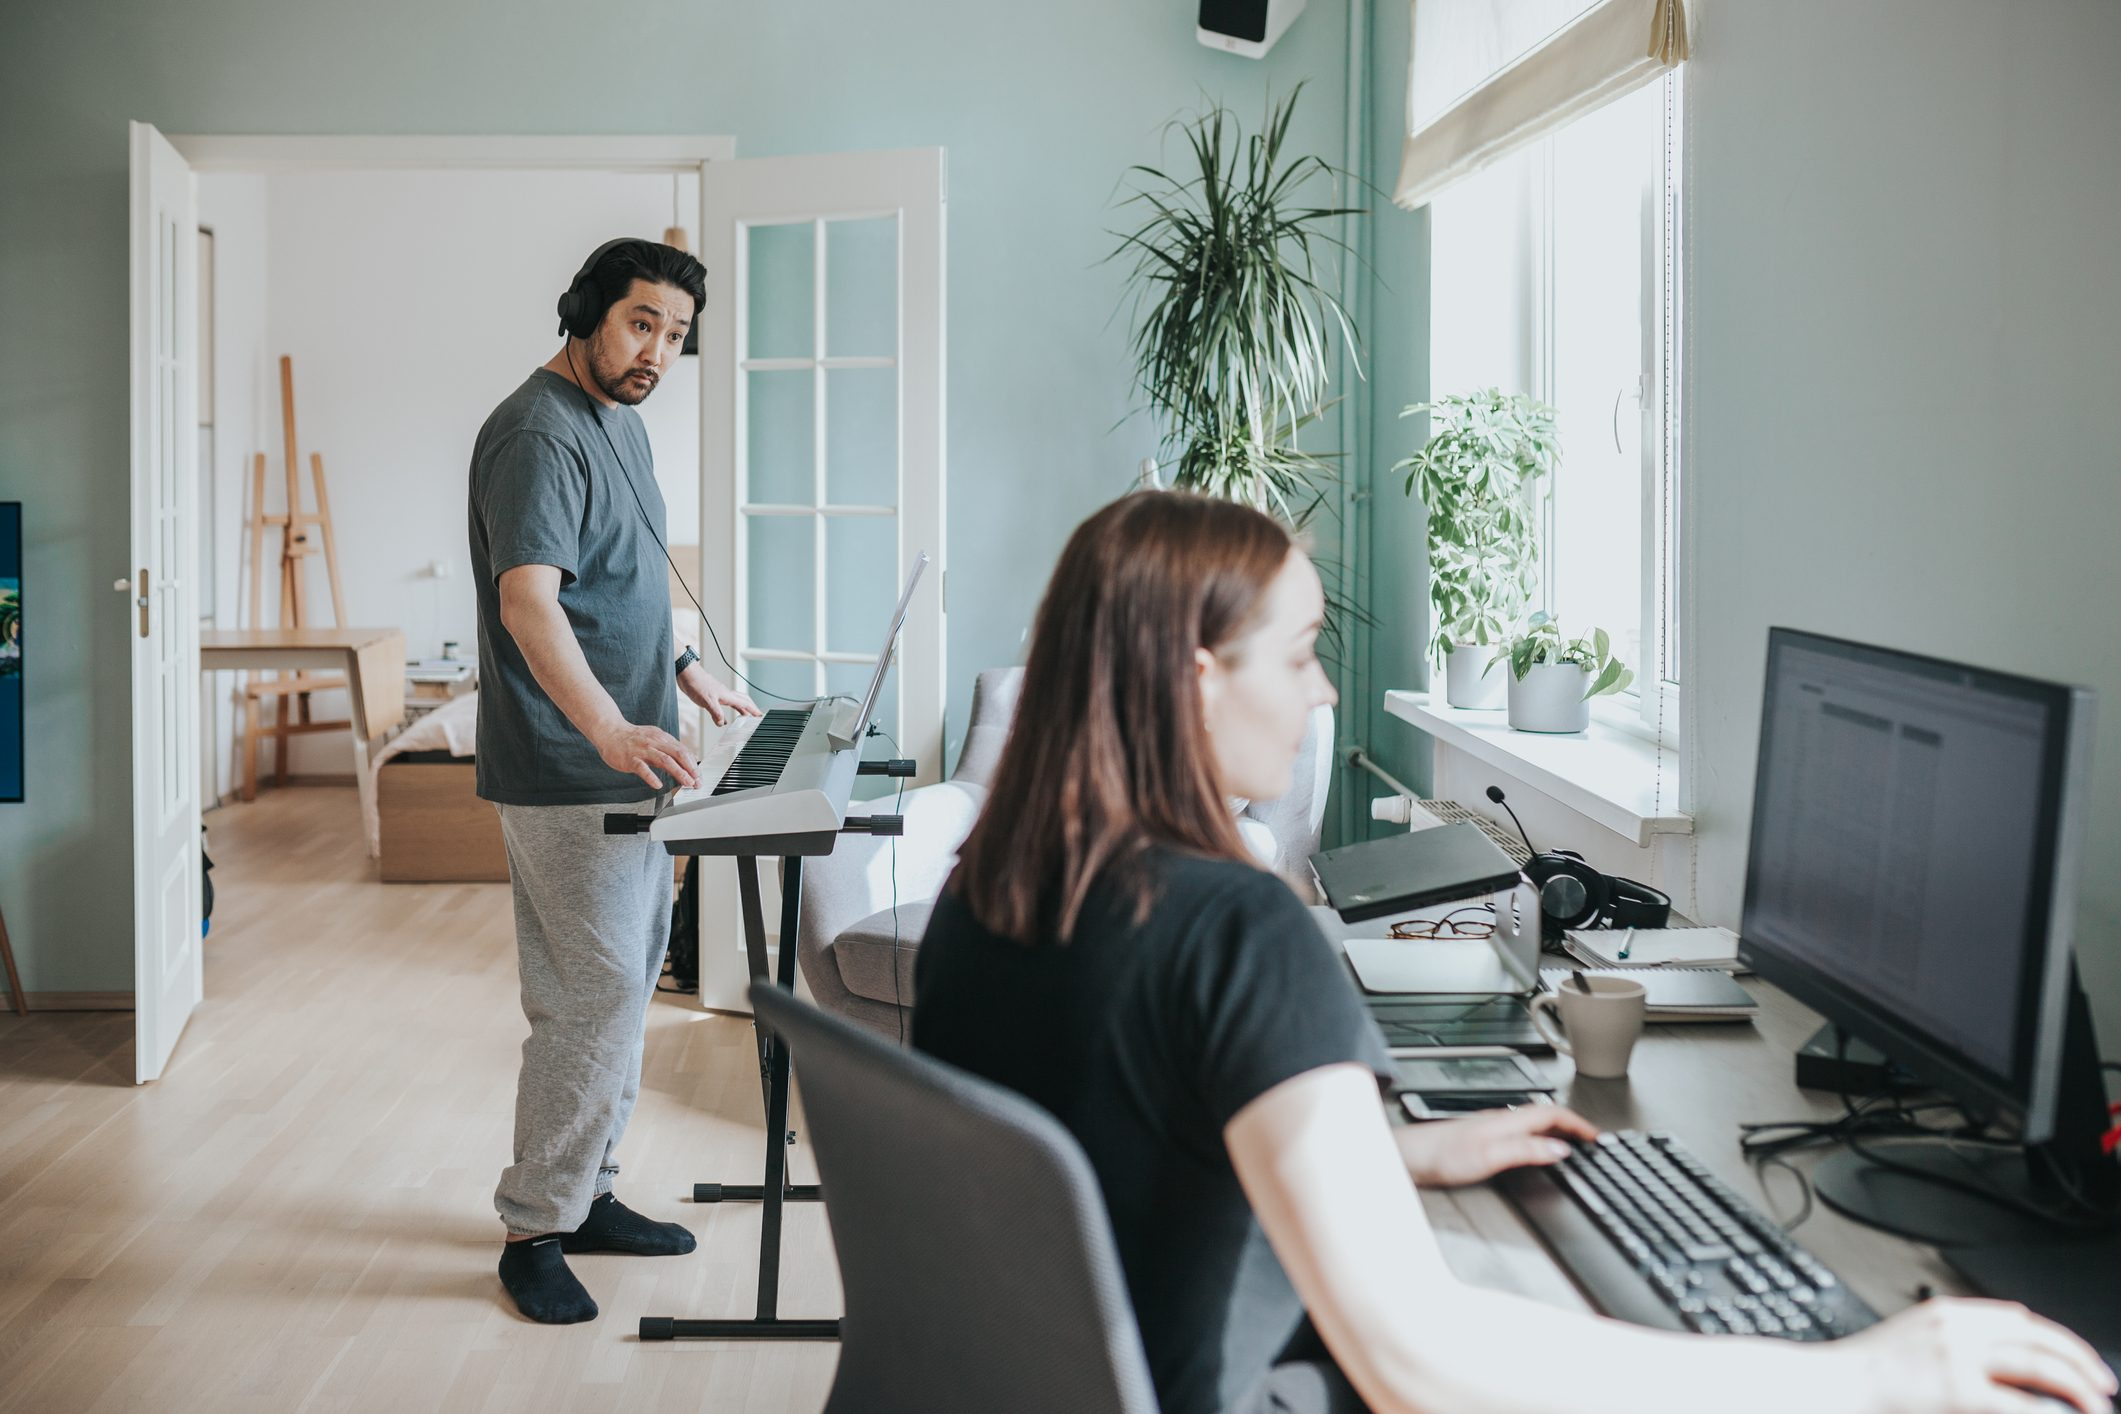 Asian adult man plays synthesizer while his wife is working at home